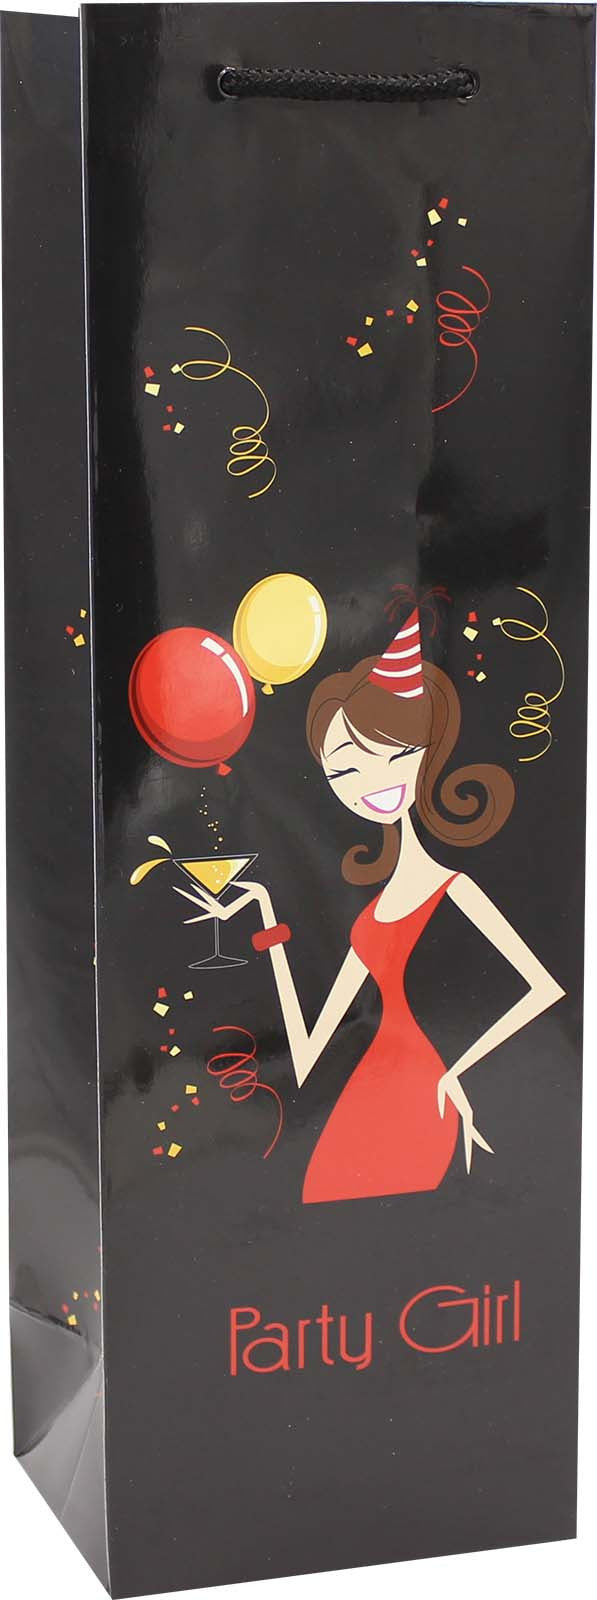 printed paper party girl wine bag